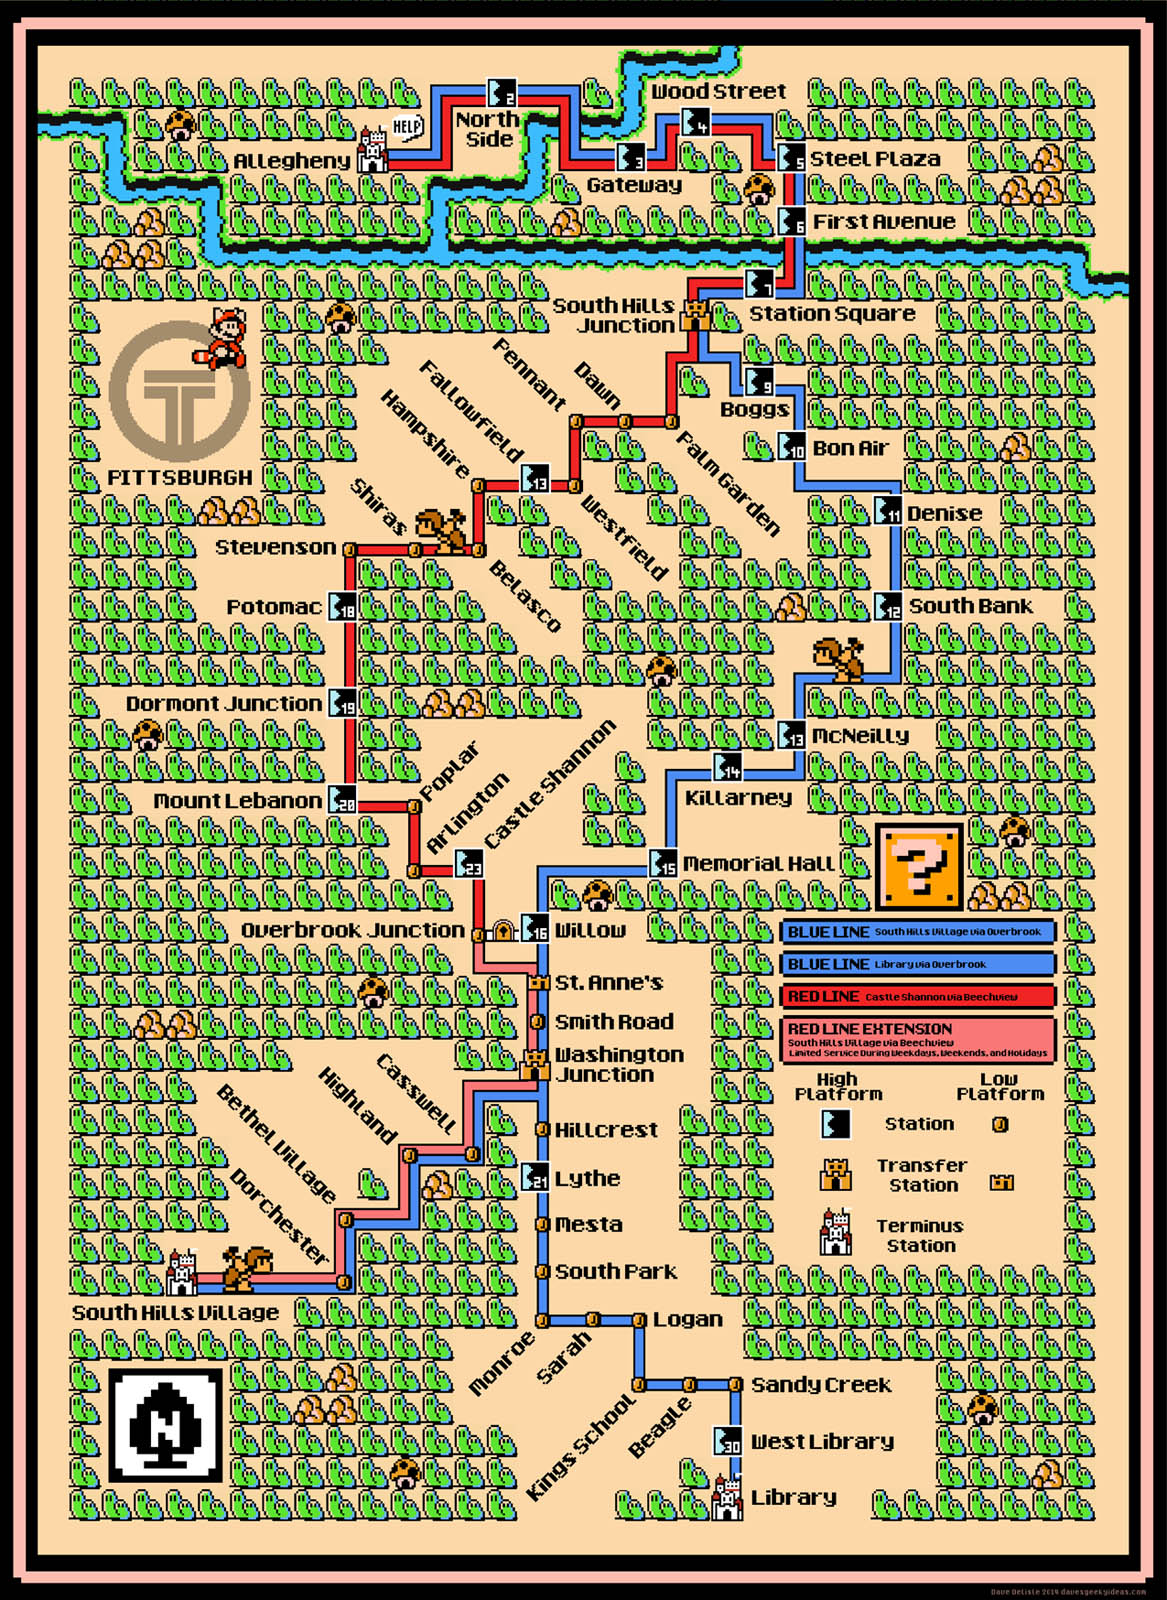 Pittaburgh Subway Map.Pittsburgh Light Rail Map Super Mario 3 Style Dave S Geeky Ideas